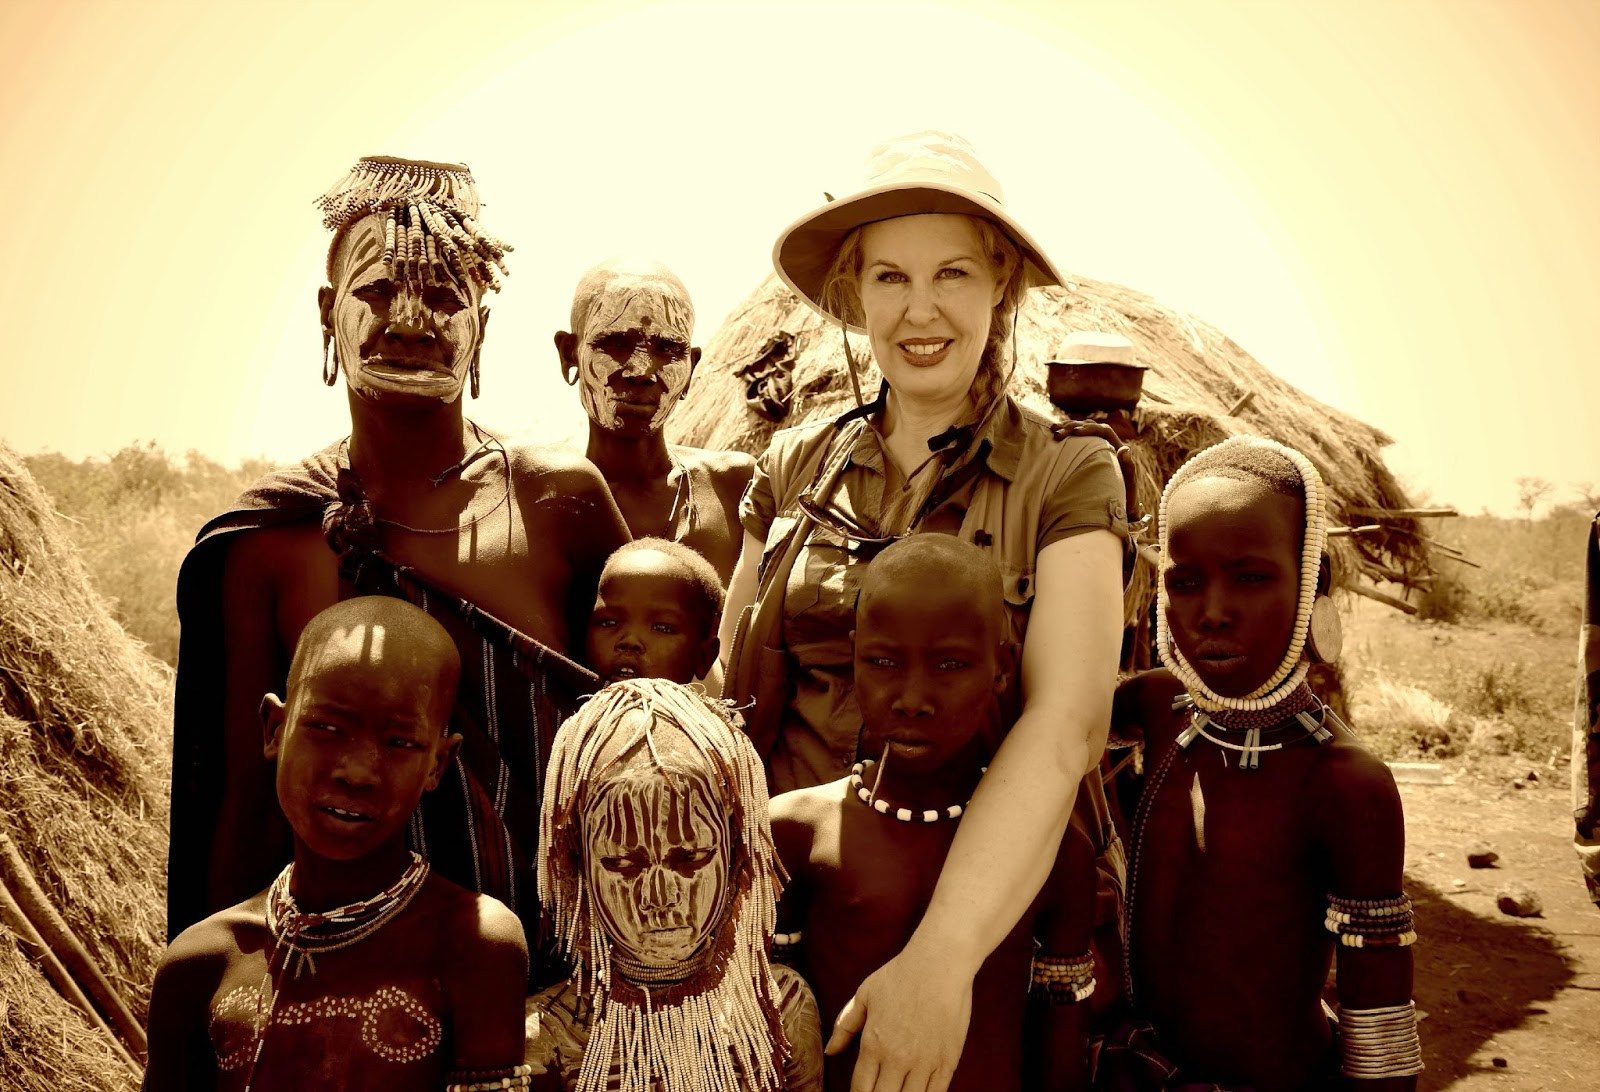 On Safari visiting the Mursi tribe